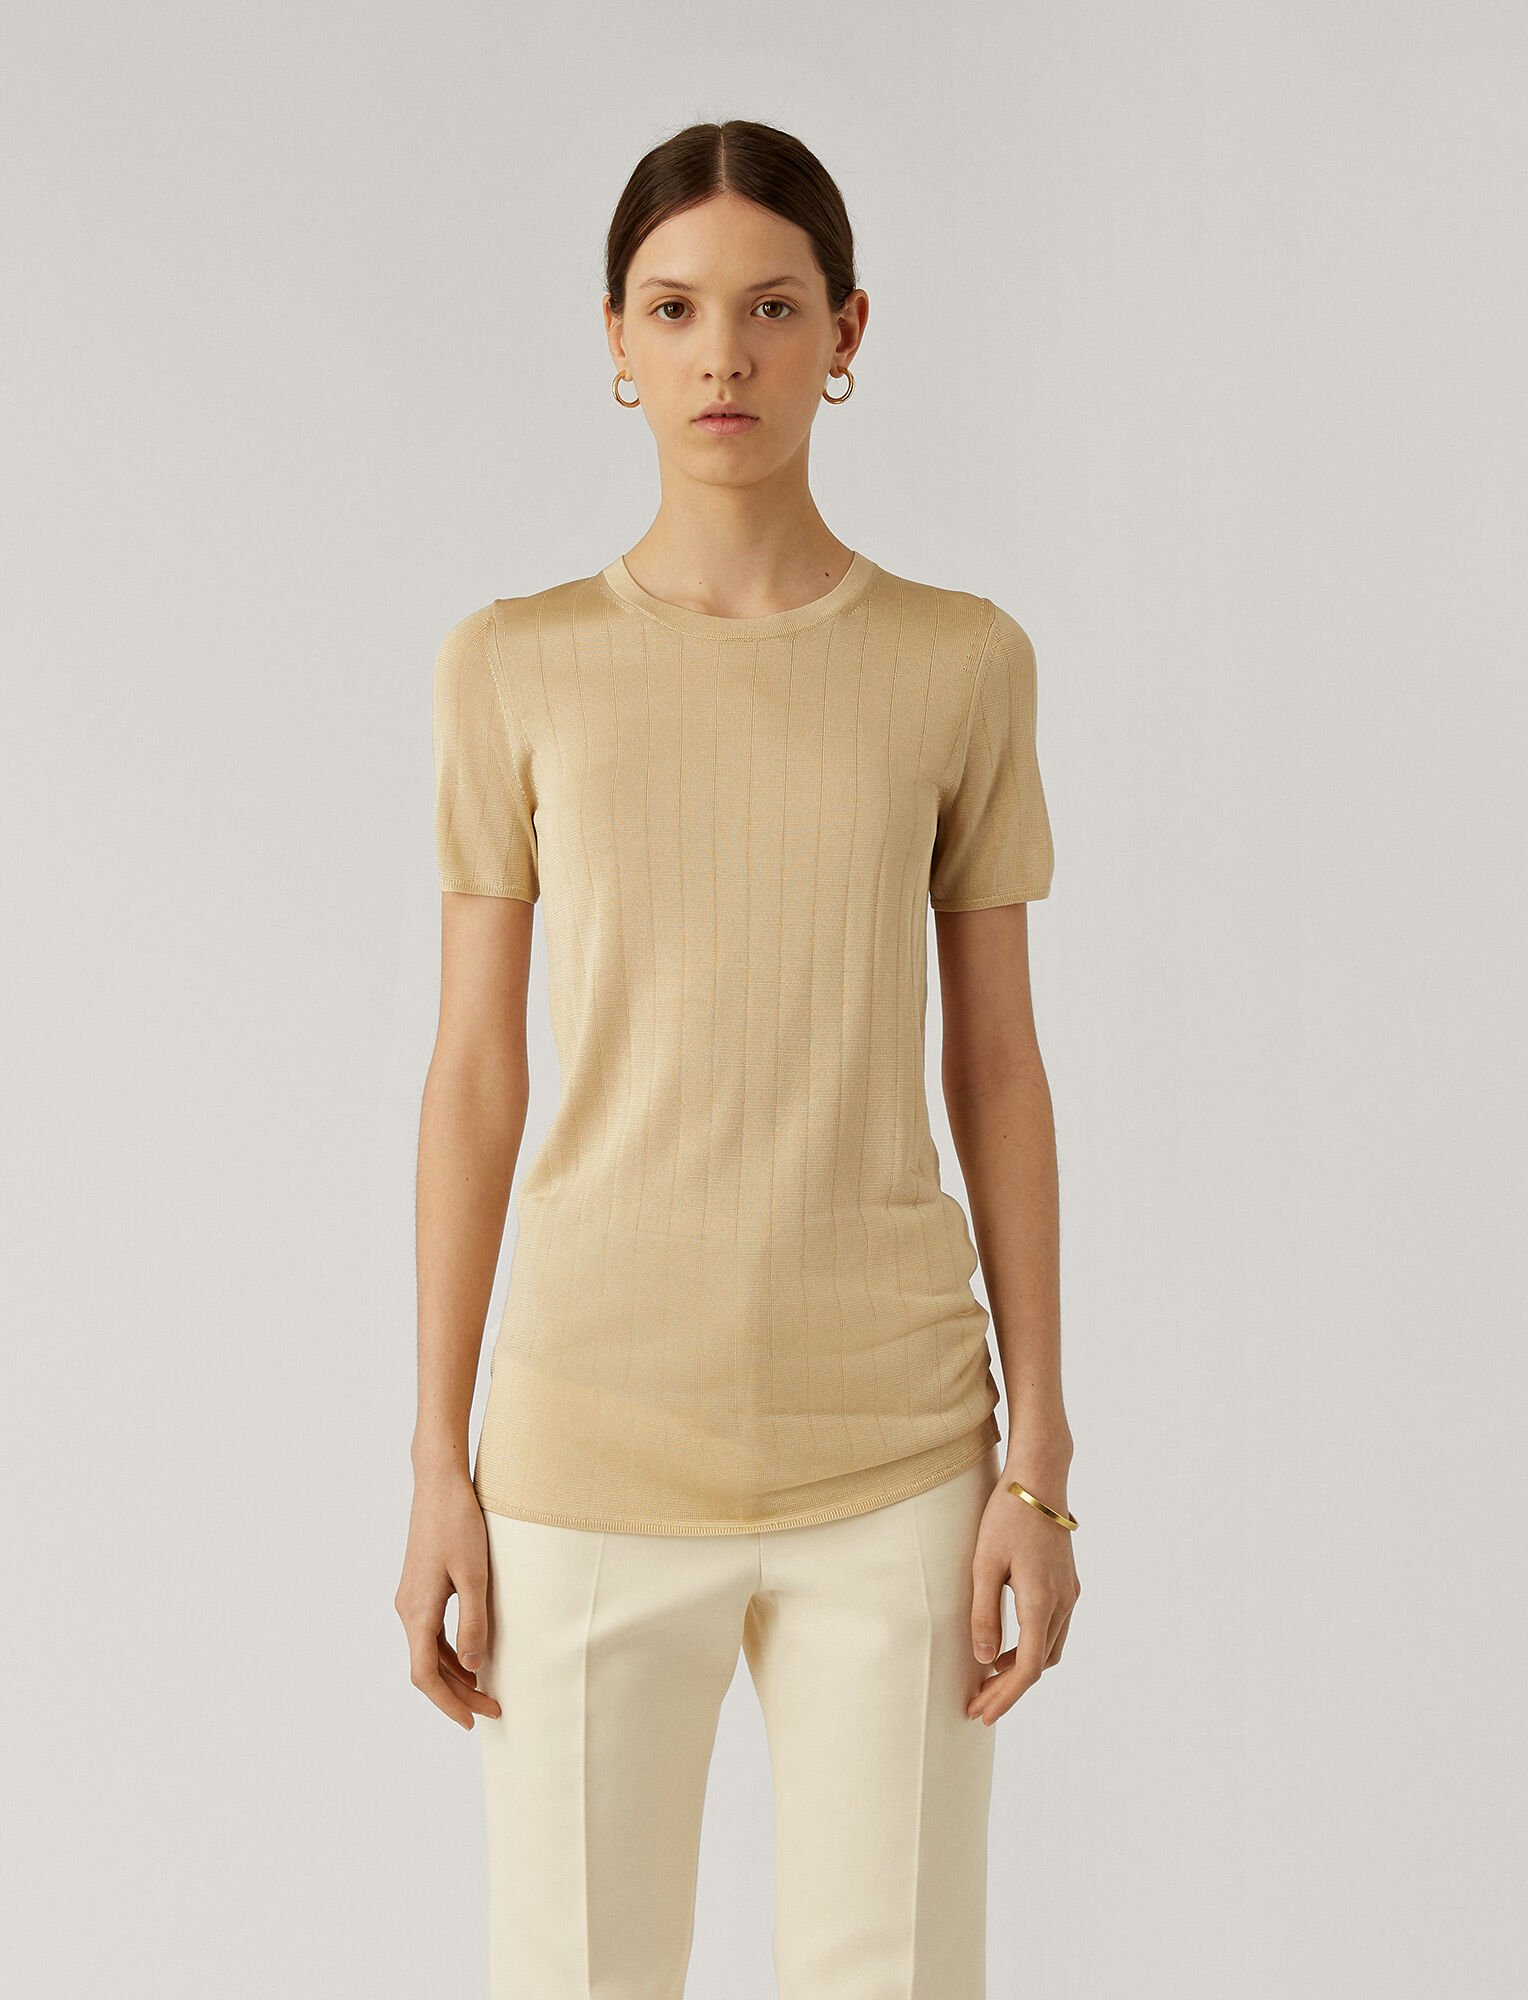 Joseph, Shinny Rib Knit Tee, in STRAW